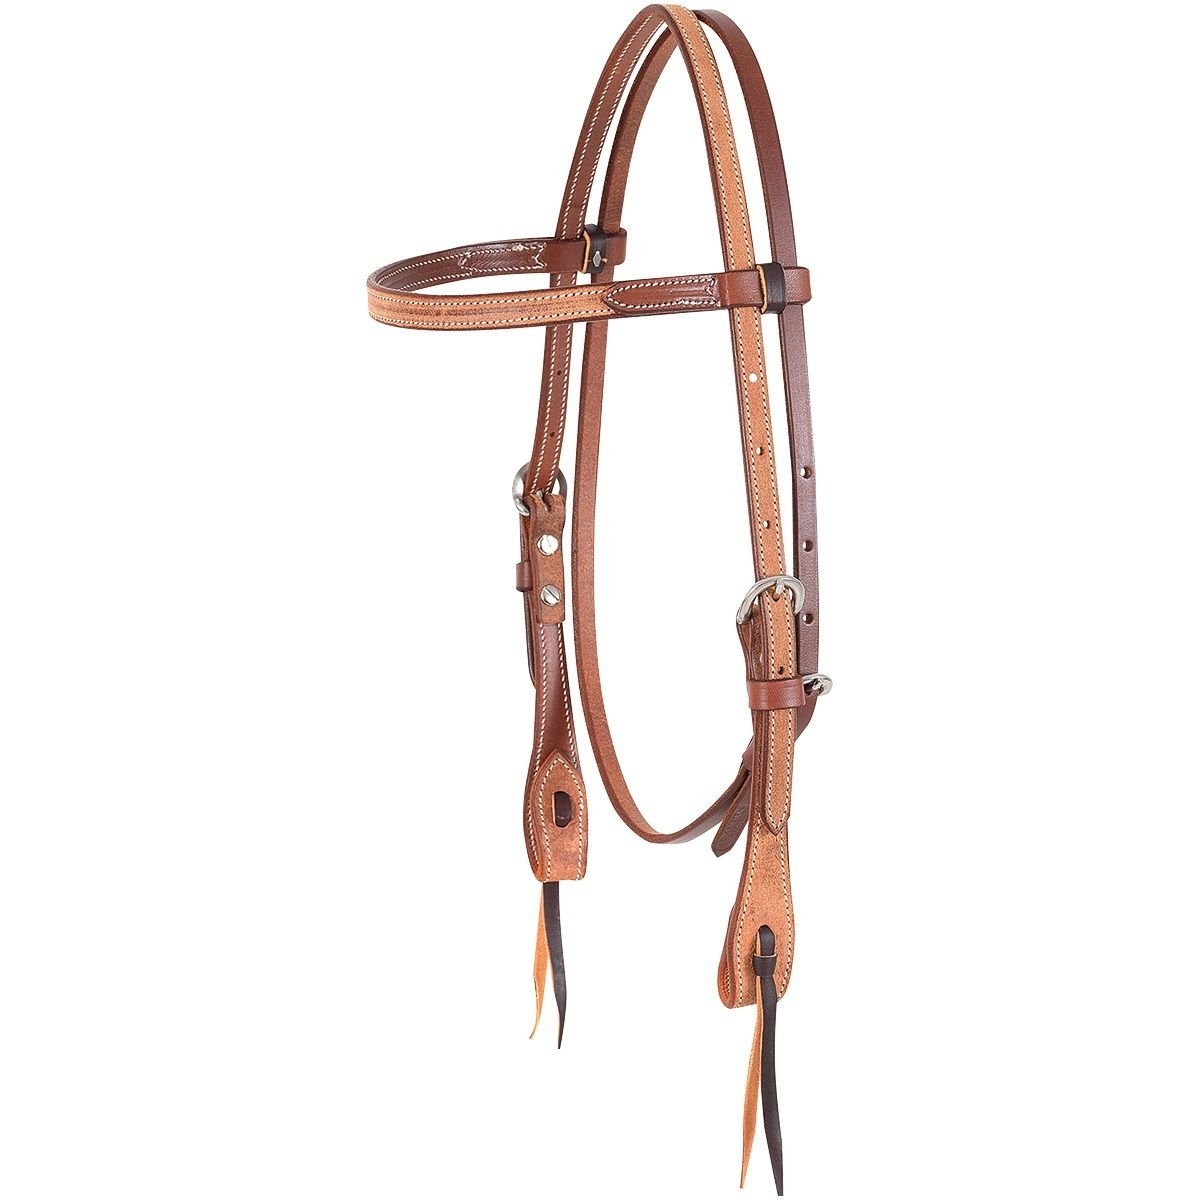 Martin Saddlery Roughout Browband Headstall Natural   B01JNB2C2A